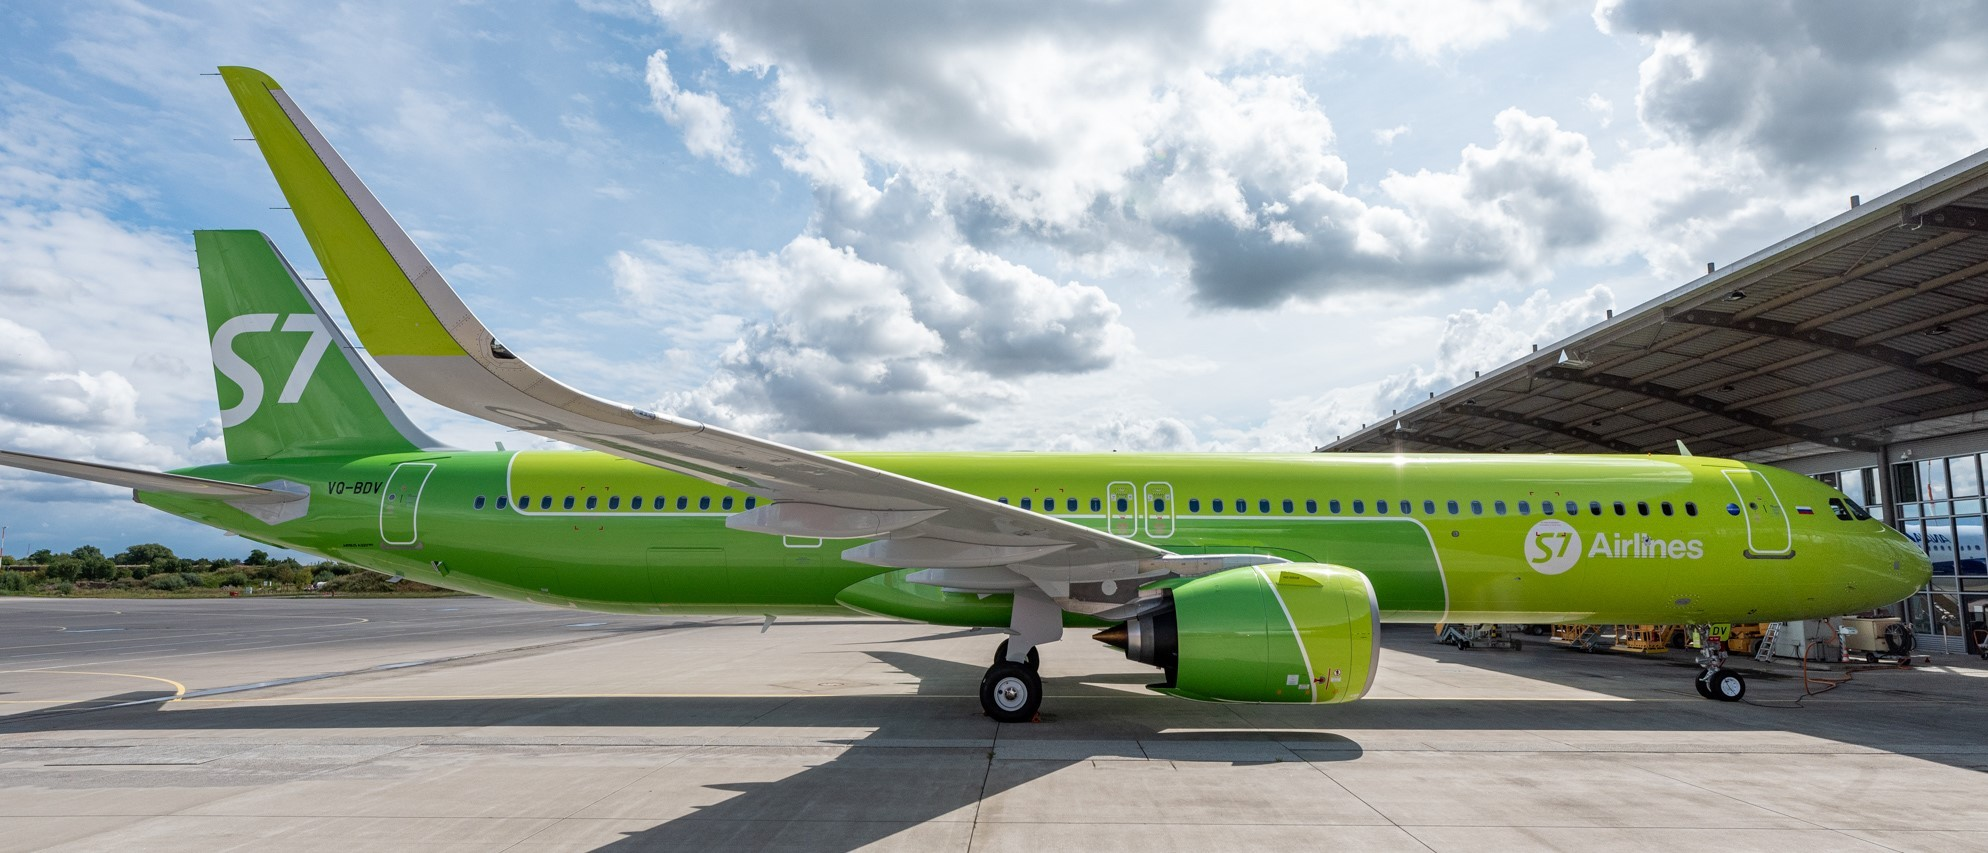 Aviation_Capital_Group_Announces_Delivery_of_One_A321neo_to_S7_Airlines